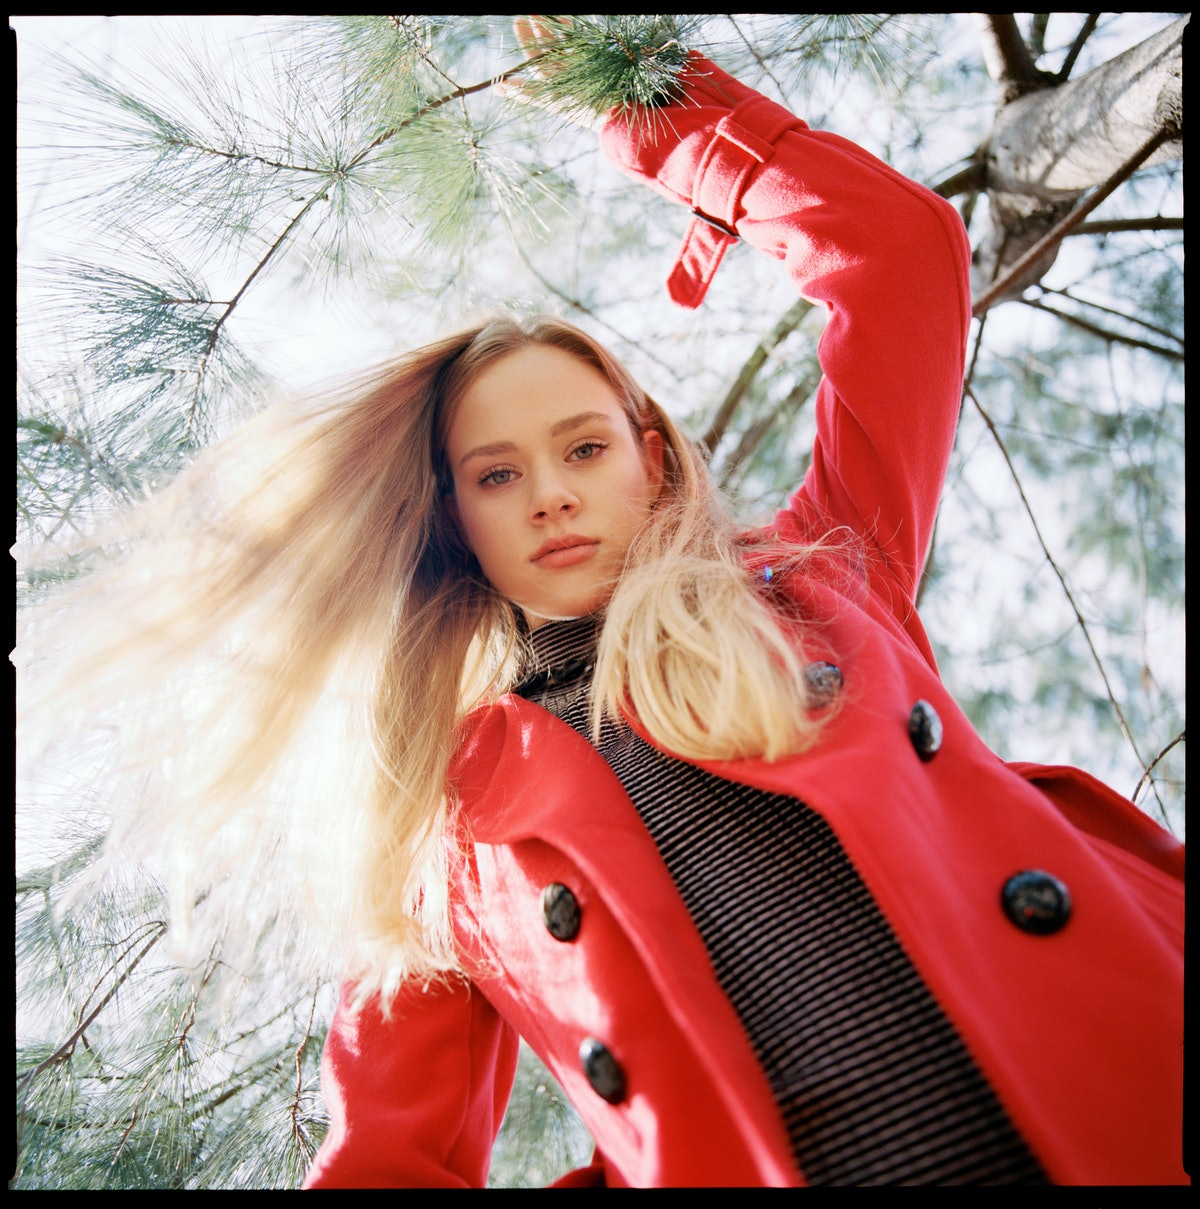 Young woman in red coat, staring down the camera, ready for a fight per her zodiac sign: Cancer.